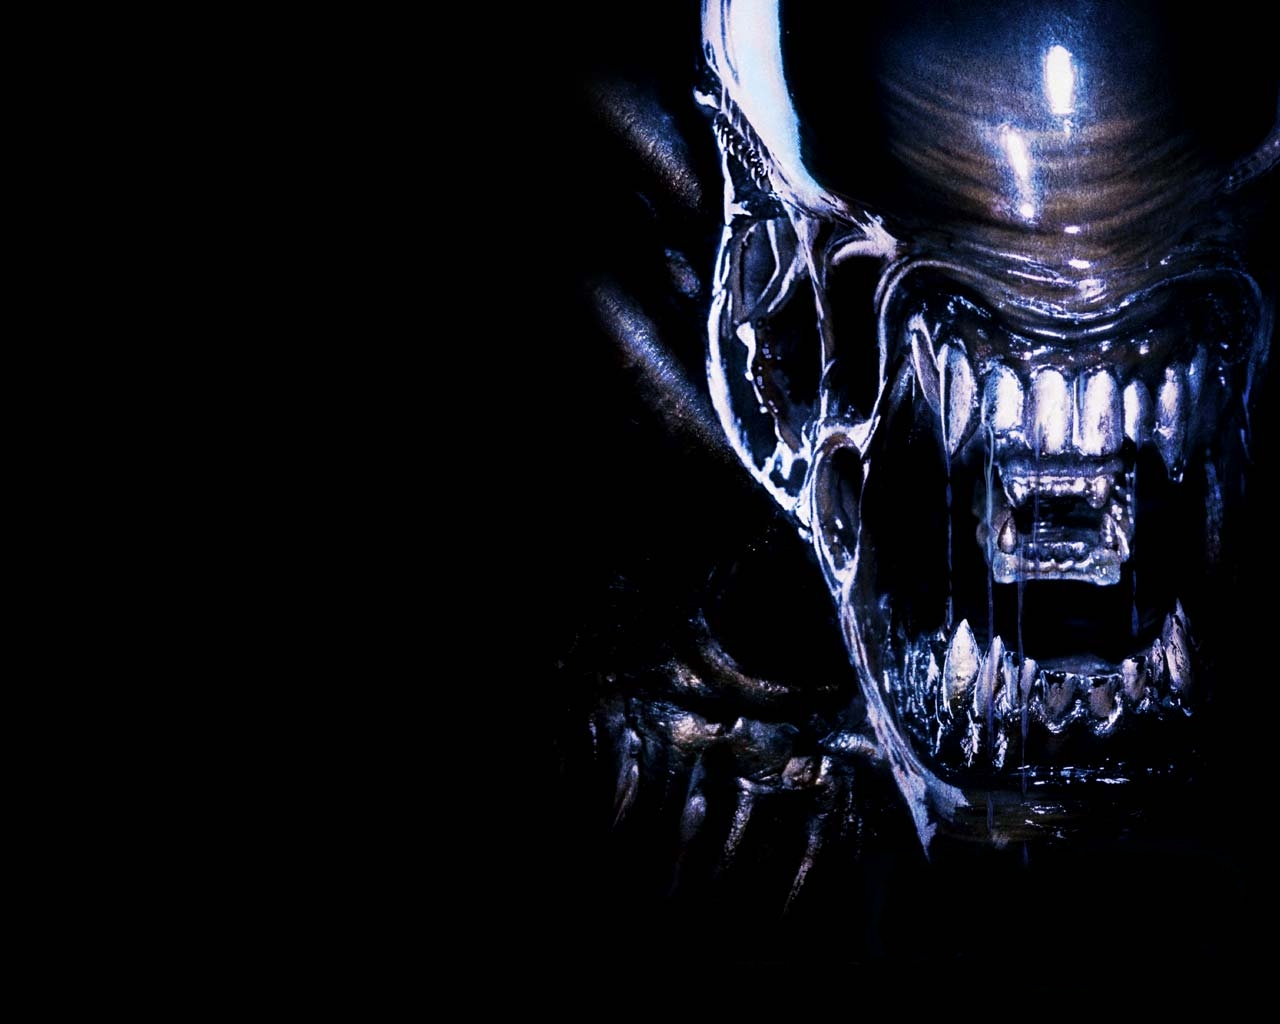 Aliens Wallpaper HD Wallpapers Aliens Wallpapers 52jpg 1280x1024